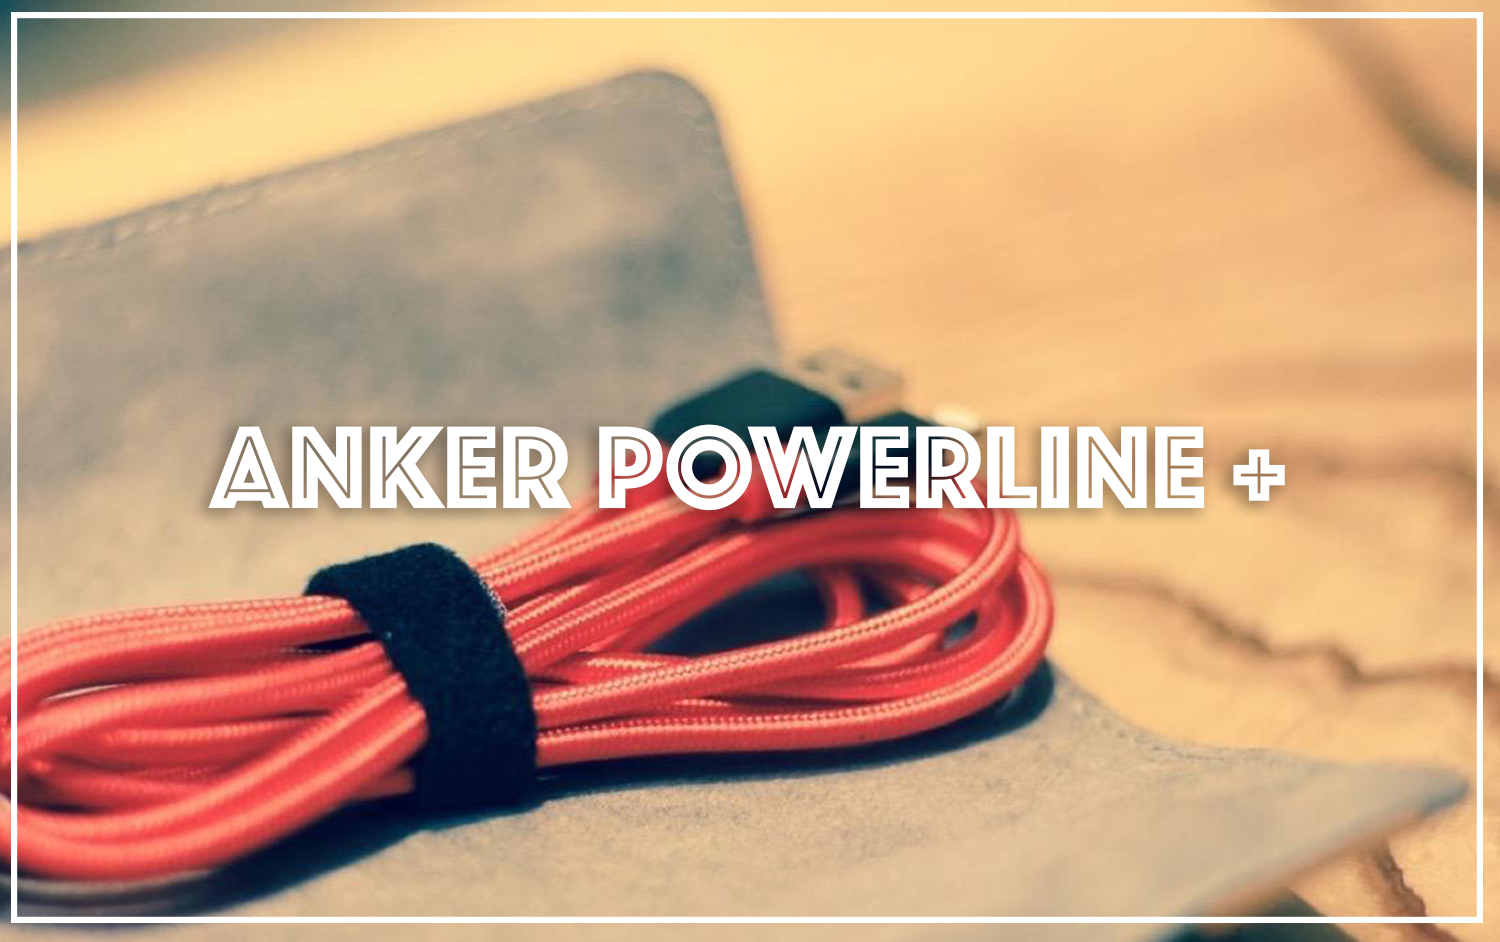 Anker powerline plusTop